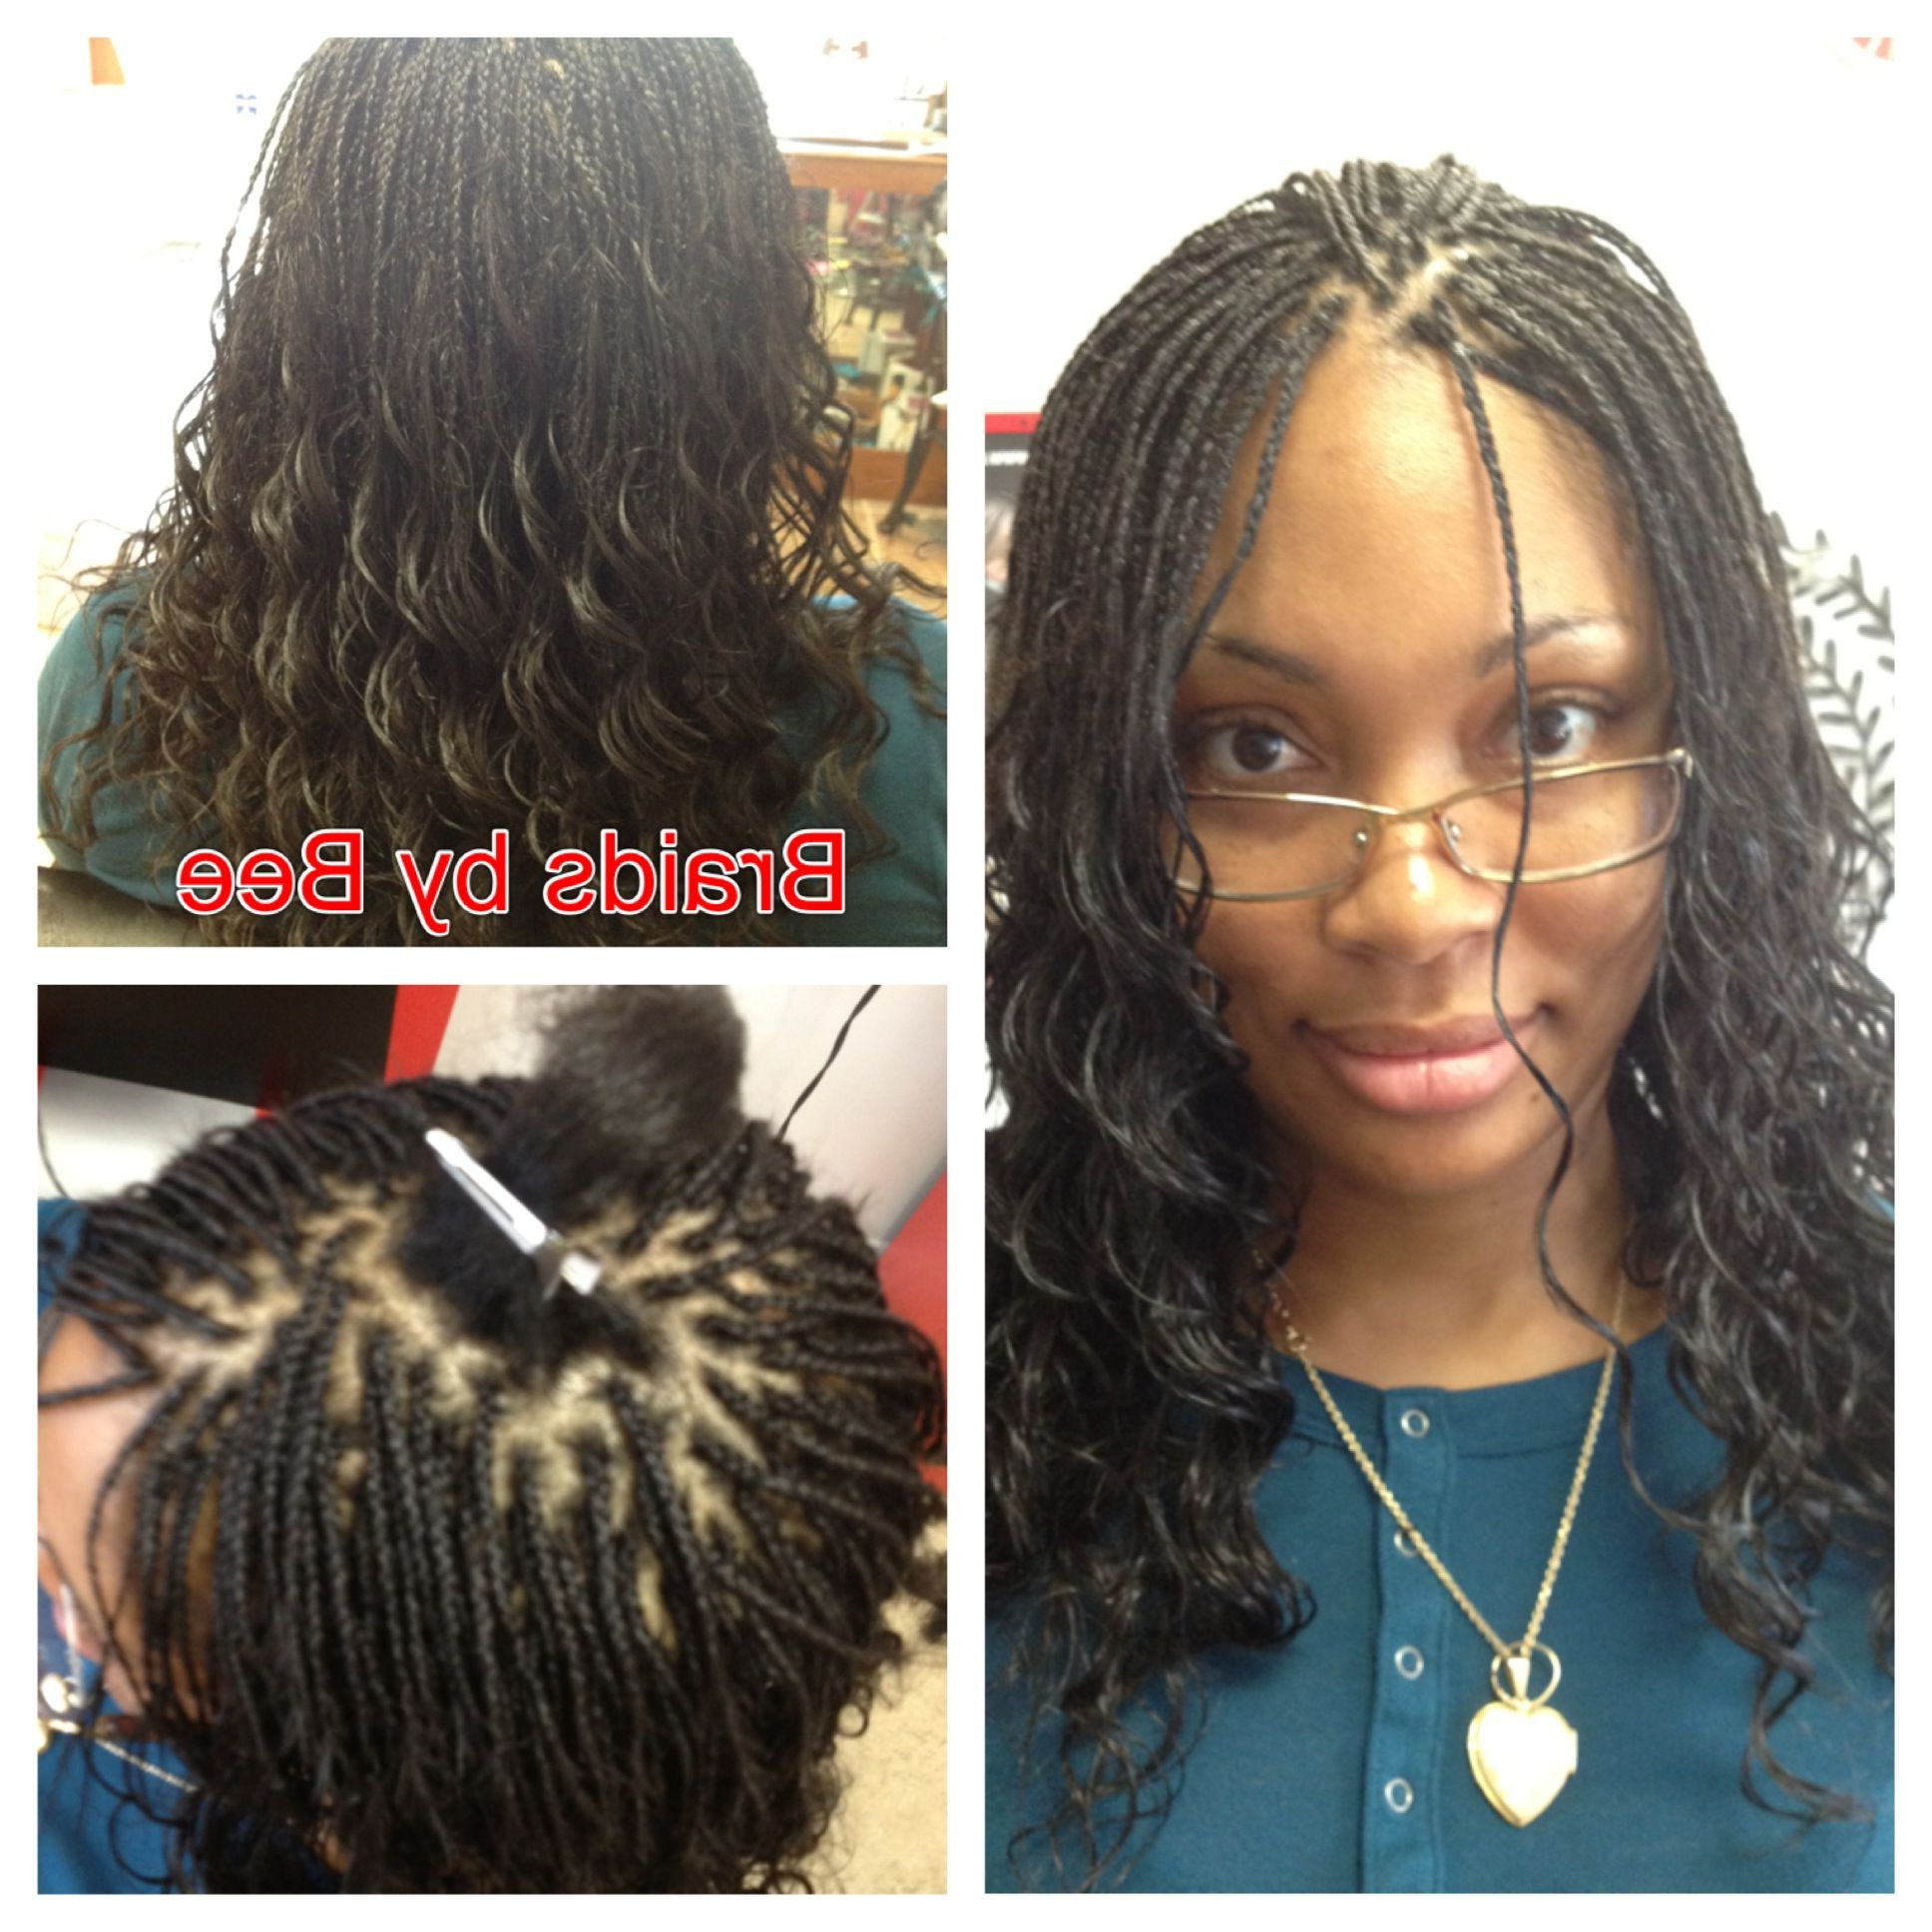 Current Micro Braid Hairstyles With Loose Curls Inside Micro Braids Hairstyles (View 5 of 20)